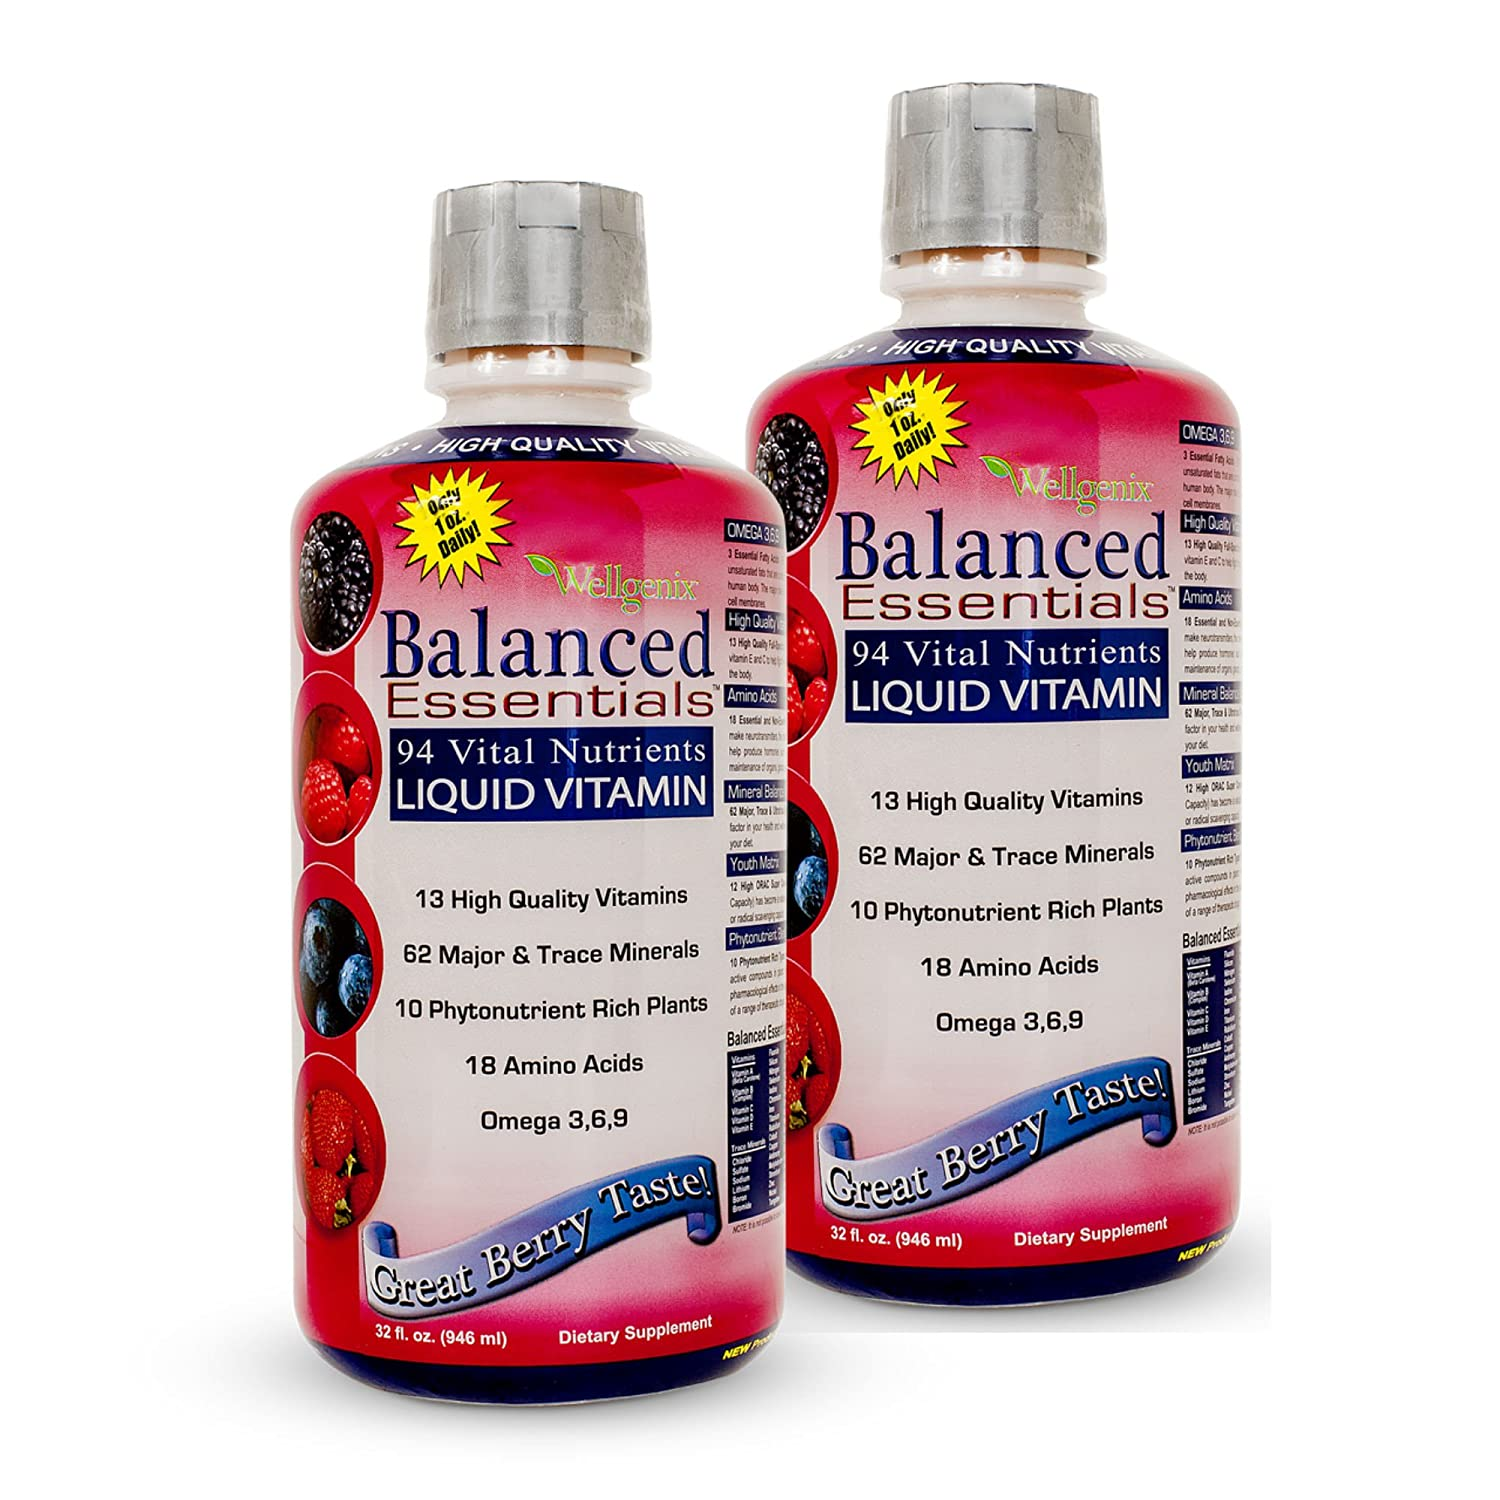 Wellgenix WGXBALLESS32X2 Balanced Essentials Liquid Minerals and Vitamins Multivitamins Very Berry 32 oz, 2 Bottles Pack of 2